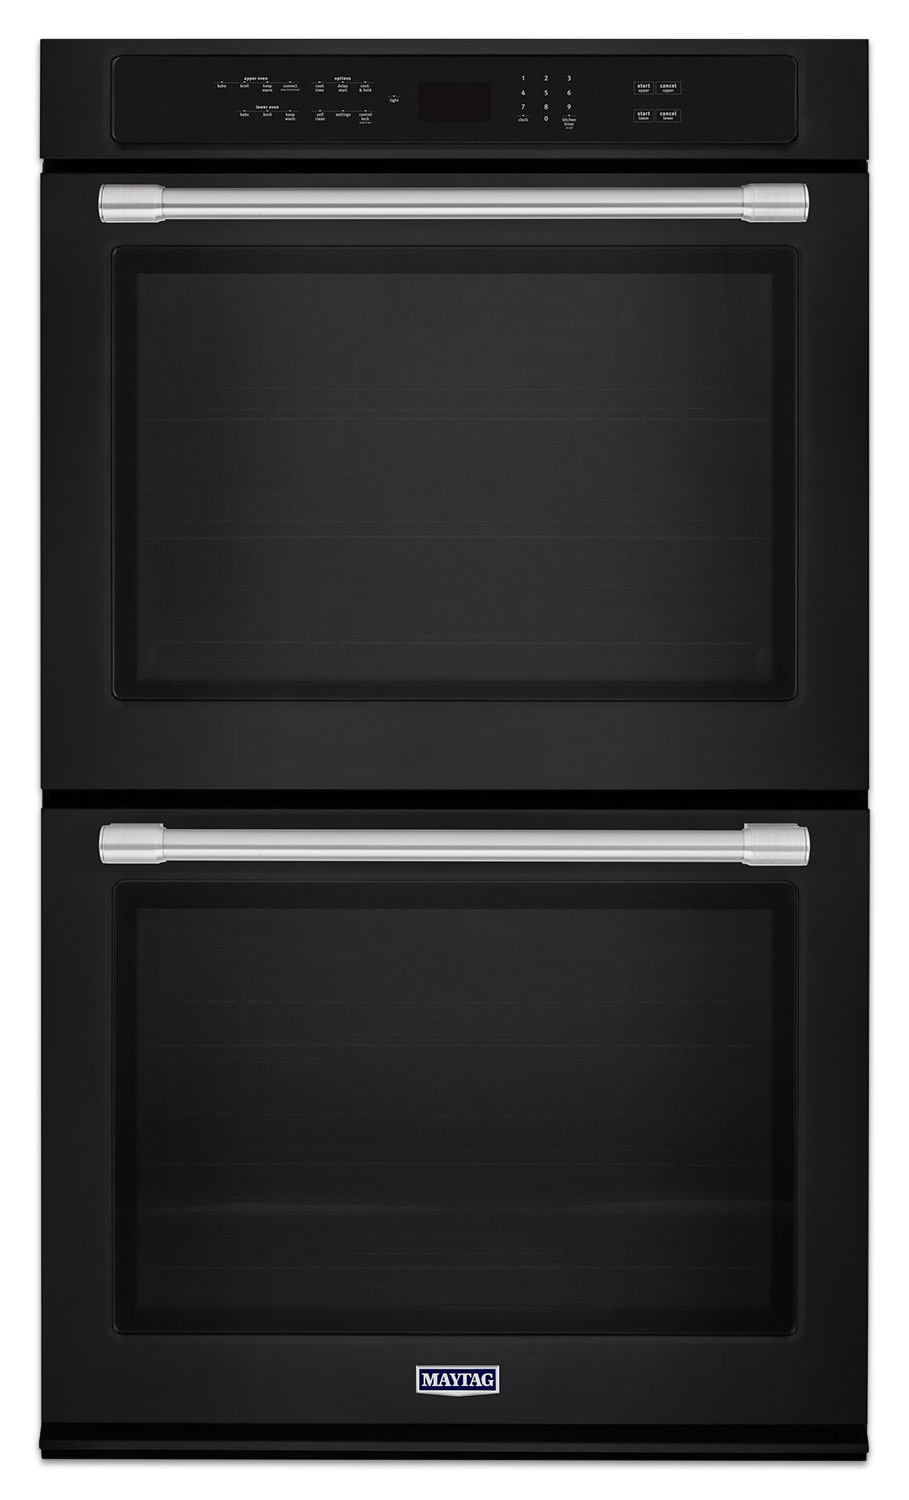 Maytag Black Electric Double Wall Oven (10.0 Cu. Ft.) - MEW9630FB